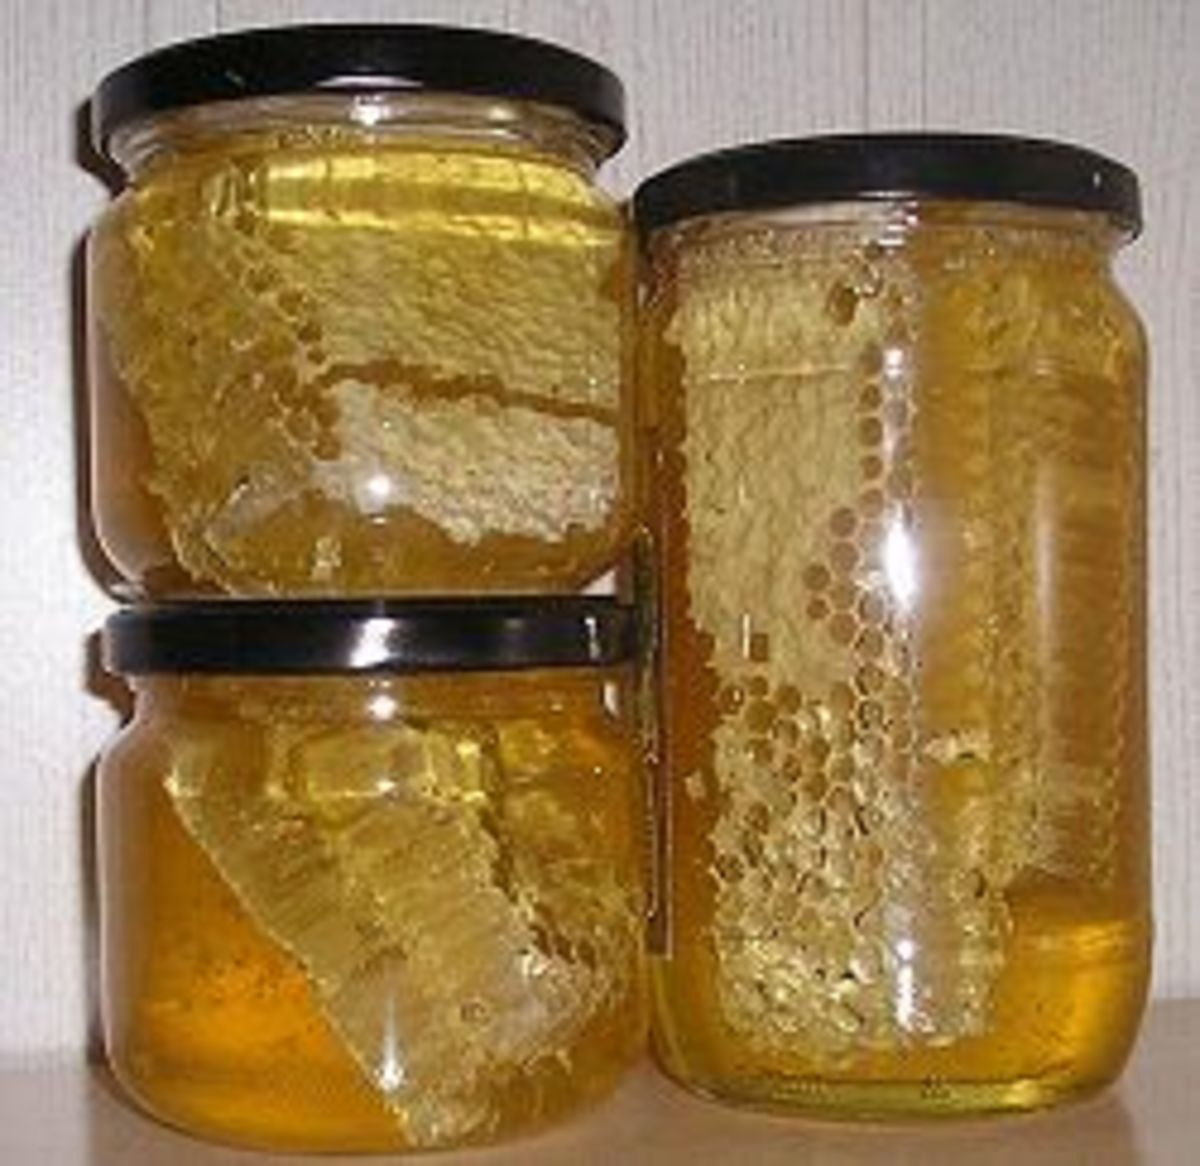 Honey face masks with Skin Benefits of Honey